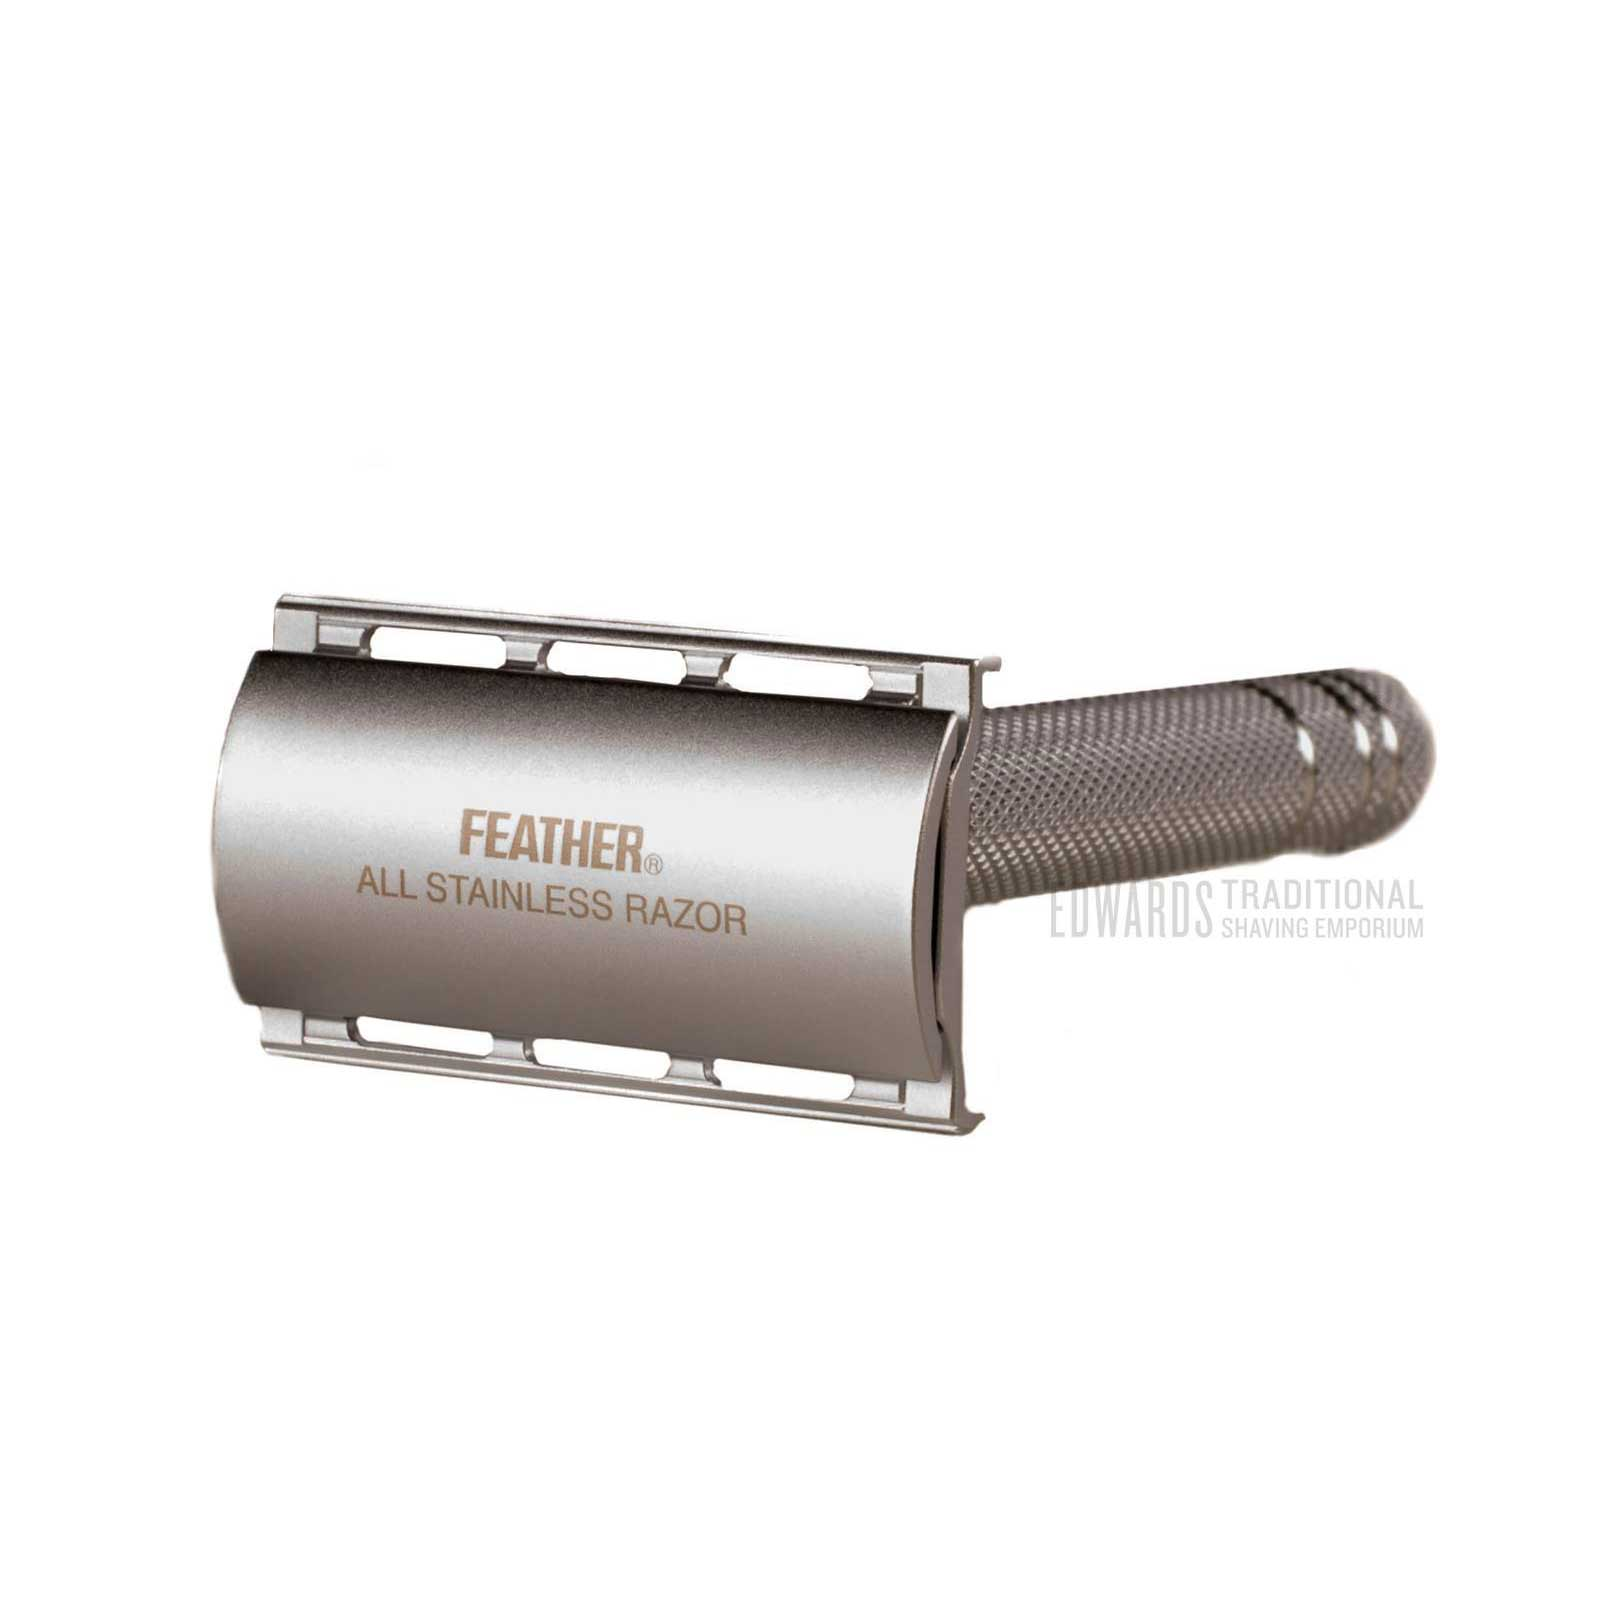 Feather AS D2, Edwards Traditional Shaving Emporium Safety Razor